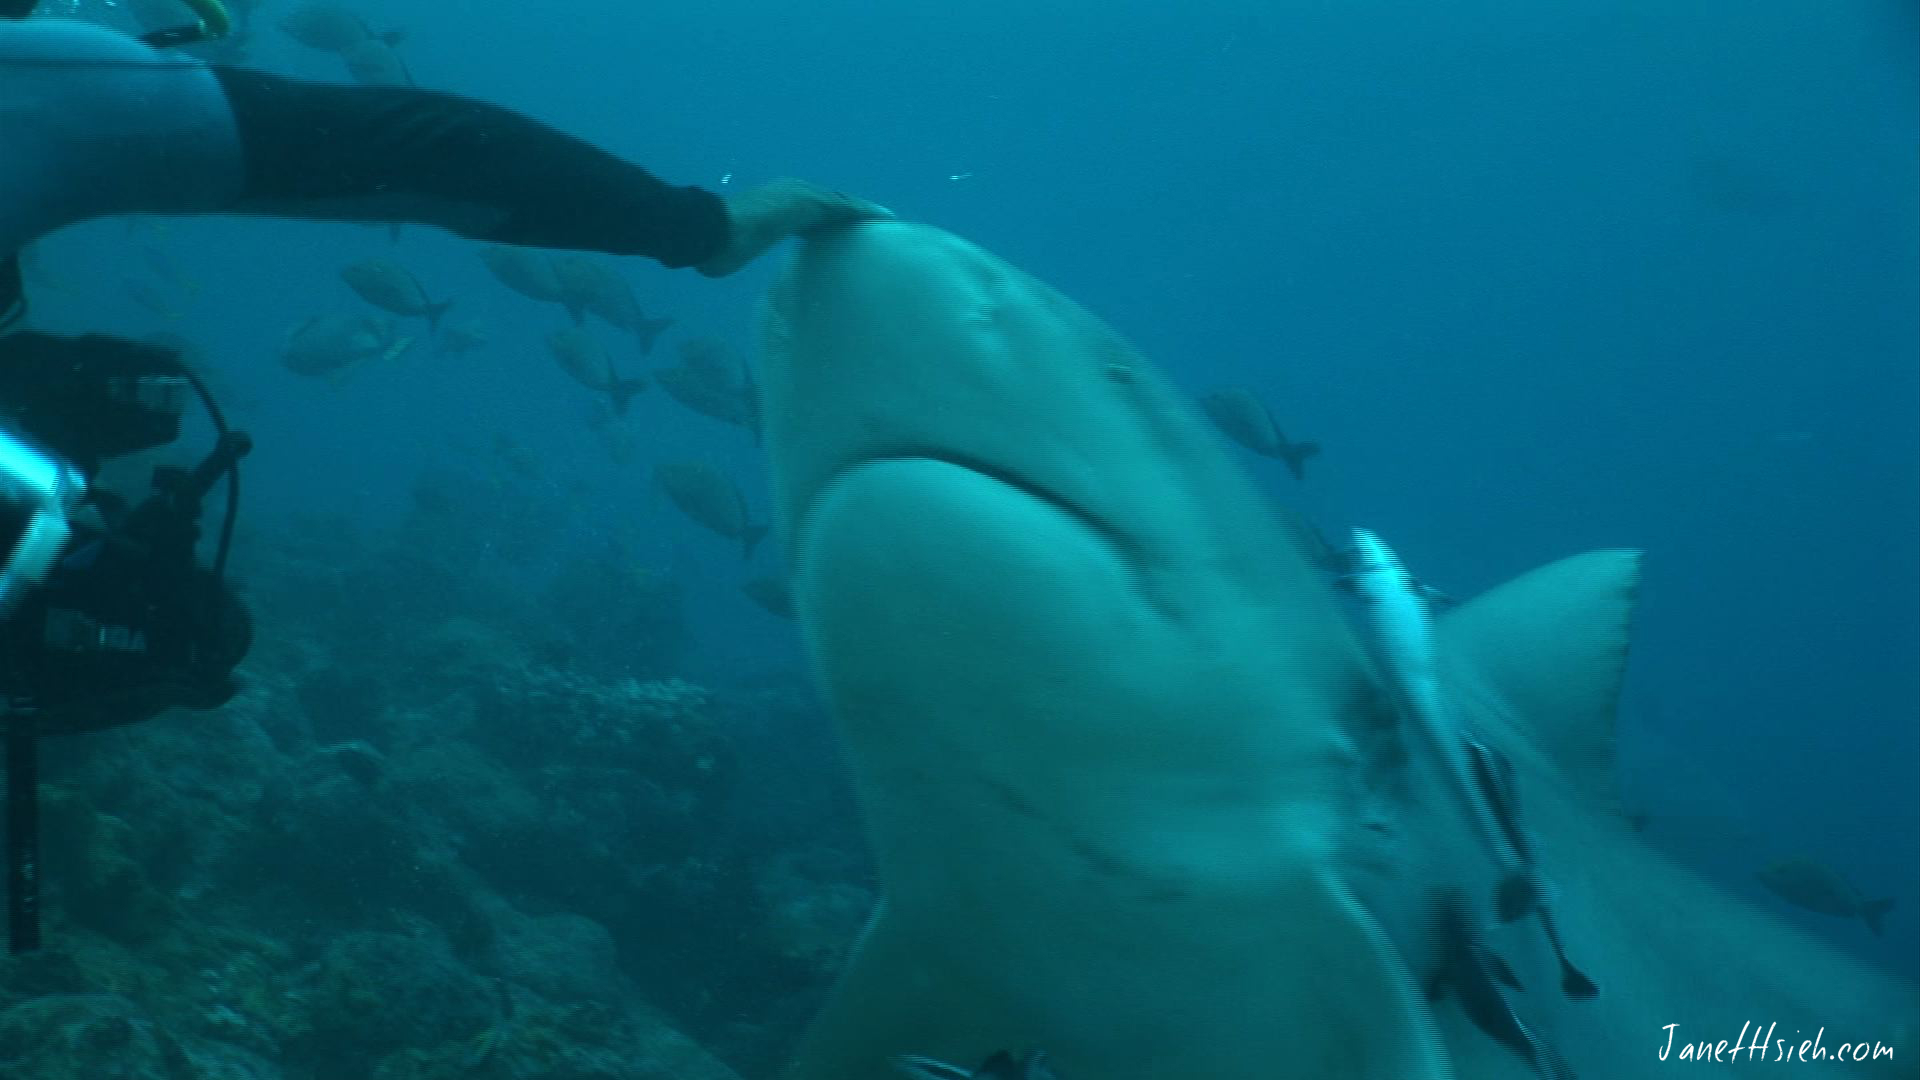 Swimming with sharks in Fiji